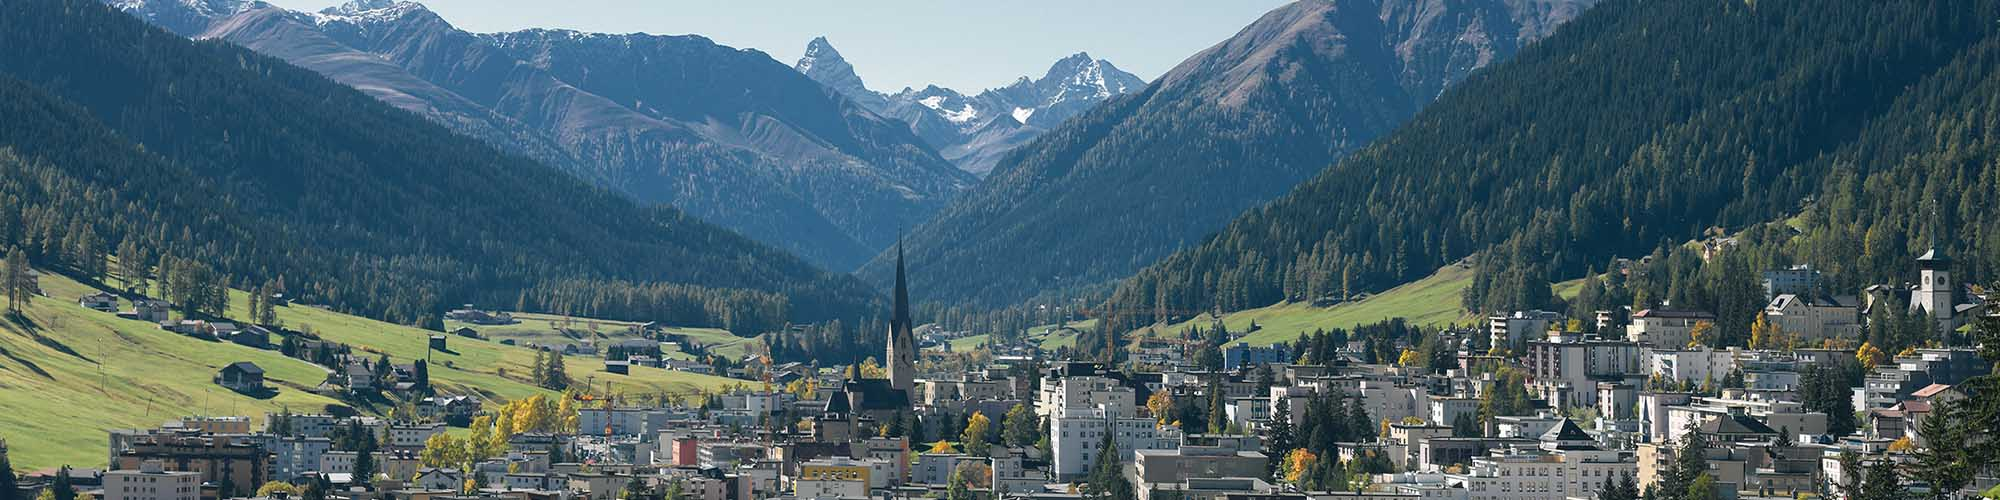 Hotel Davos - WLAN - is available for free